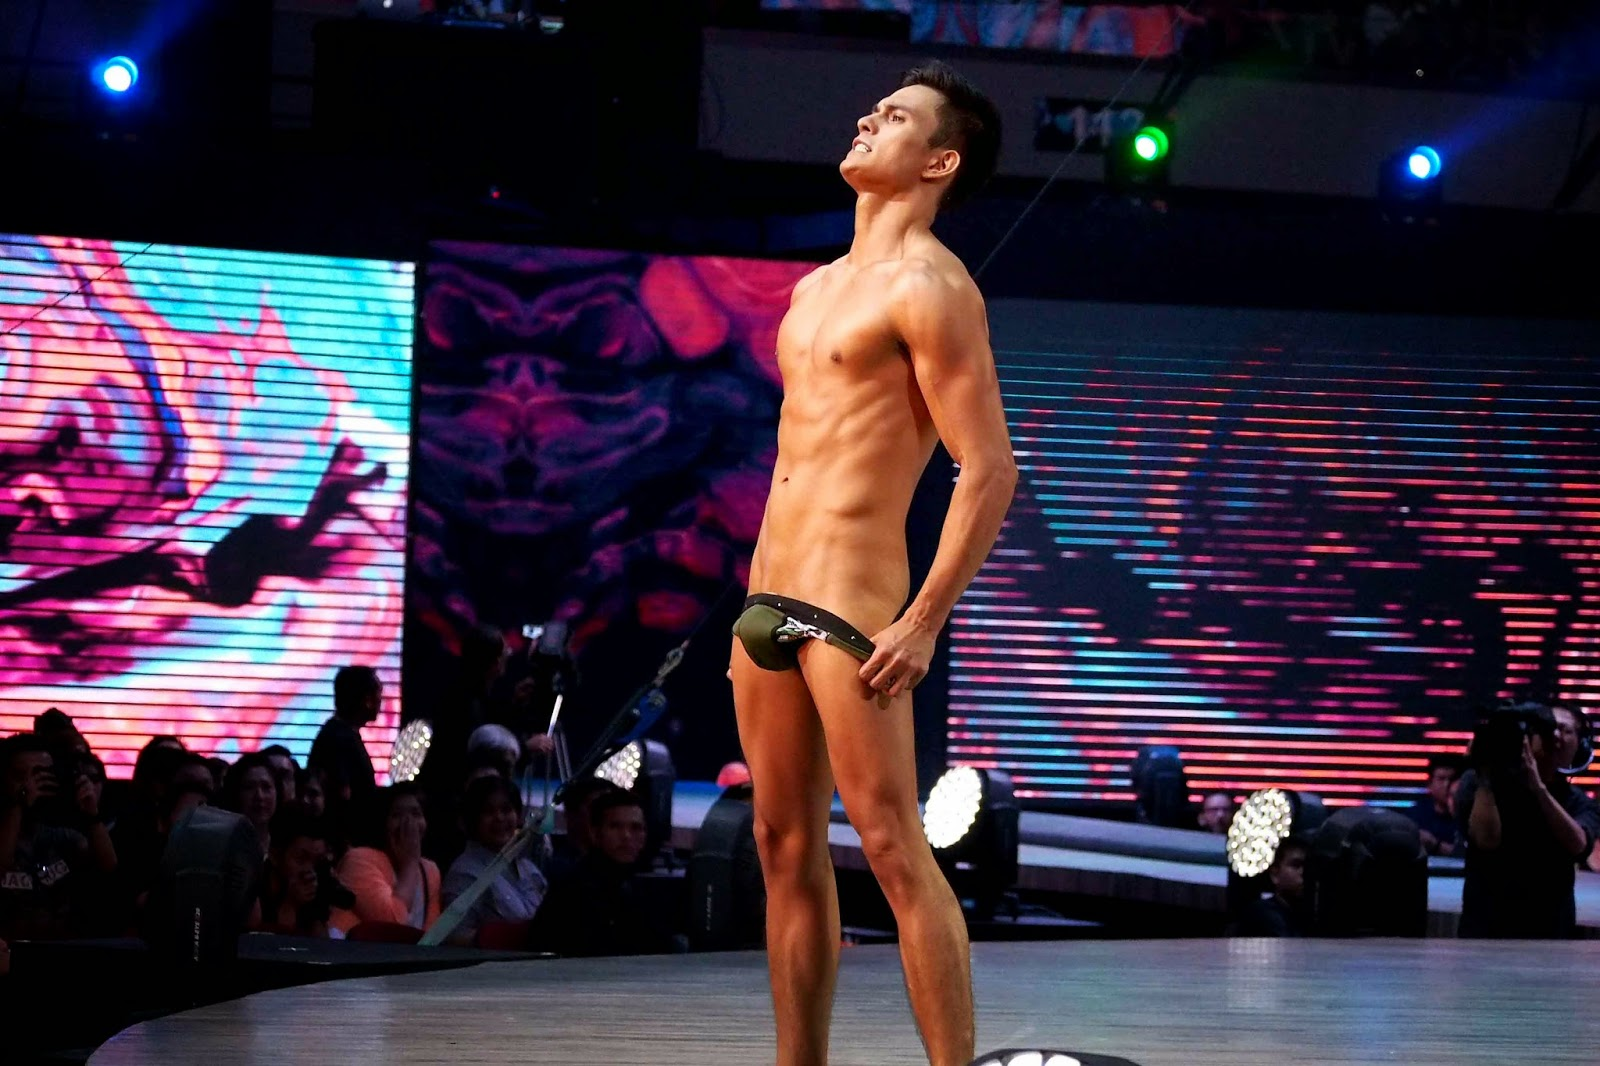 Cached Bench male underwear fashion show video